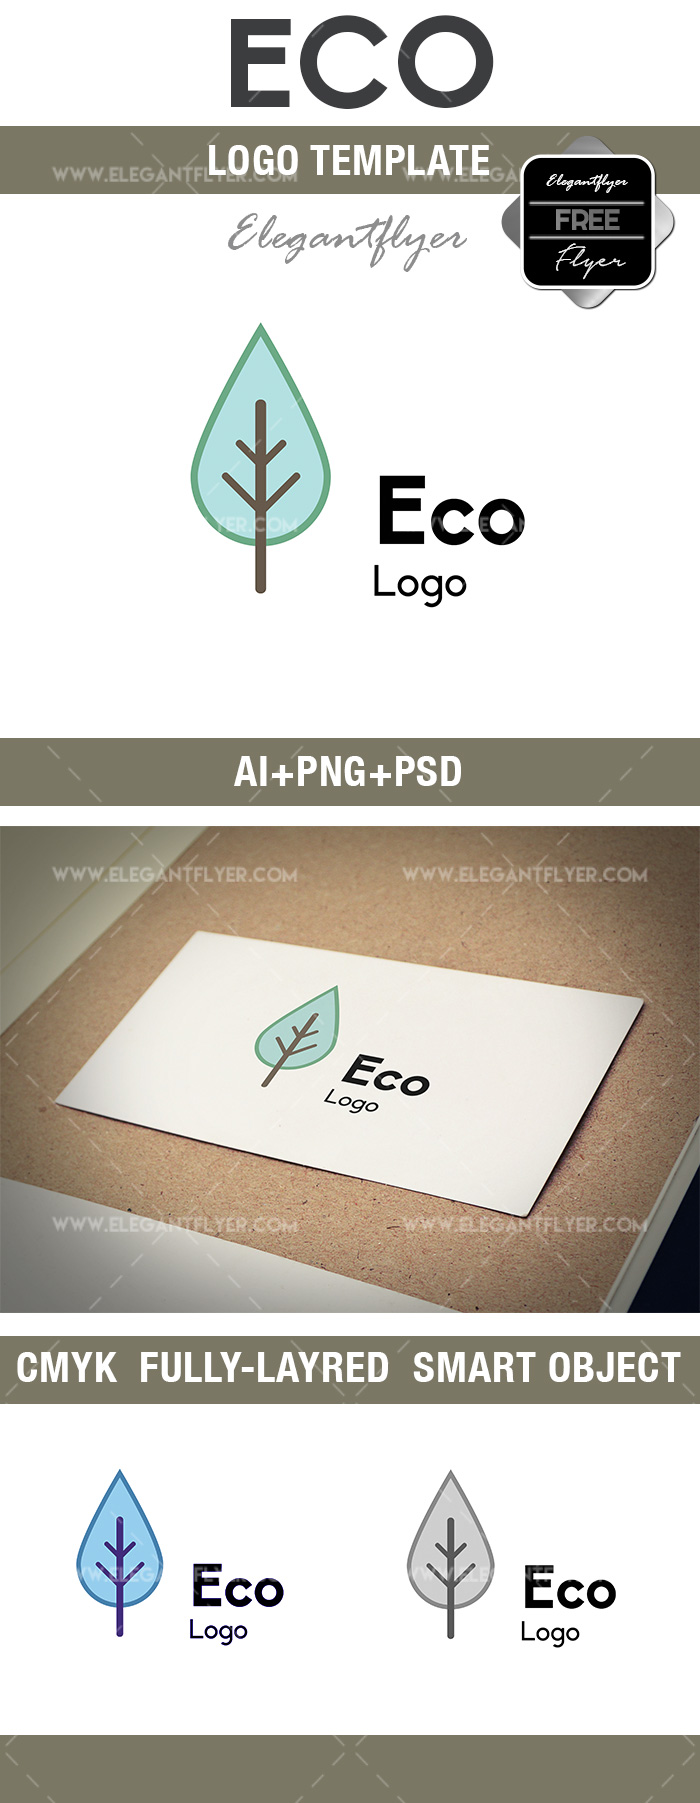 Eco – Free Logo Template